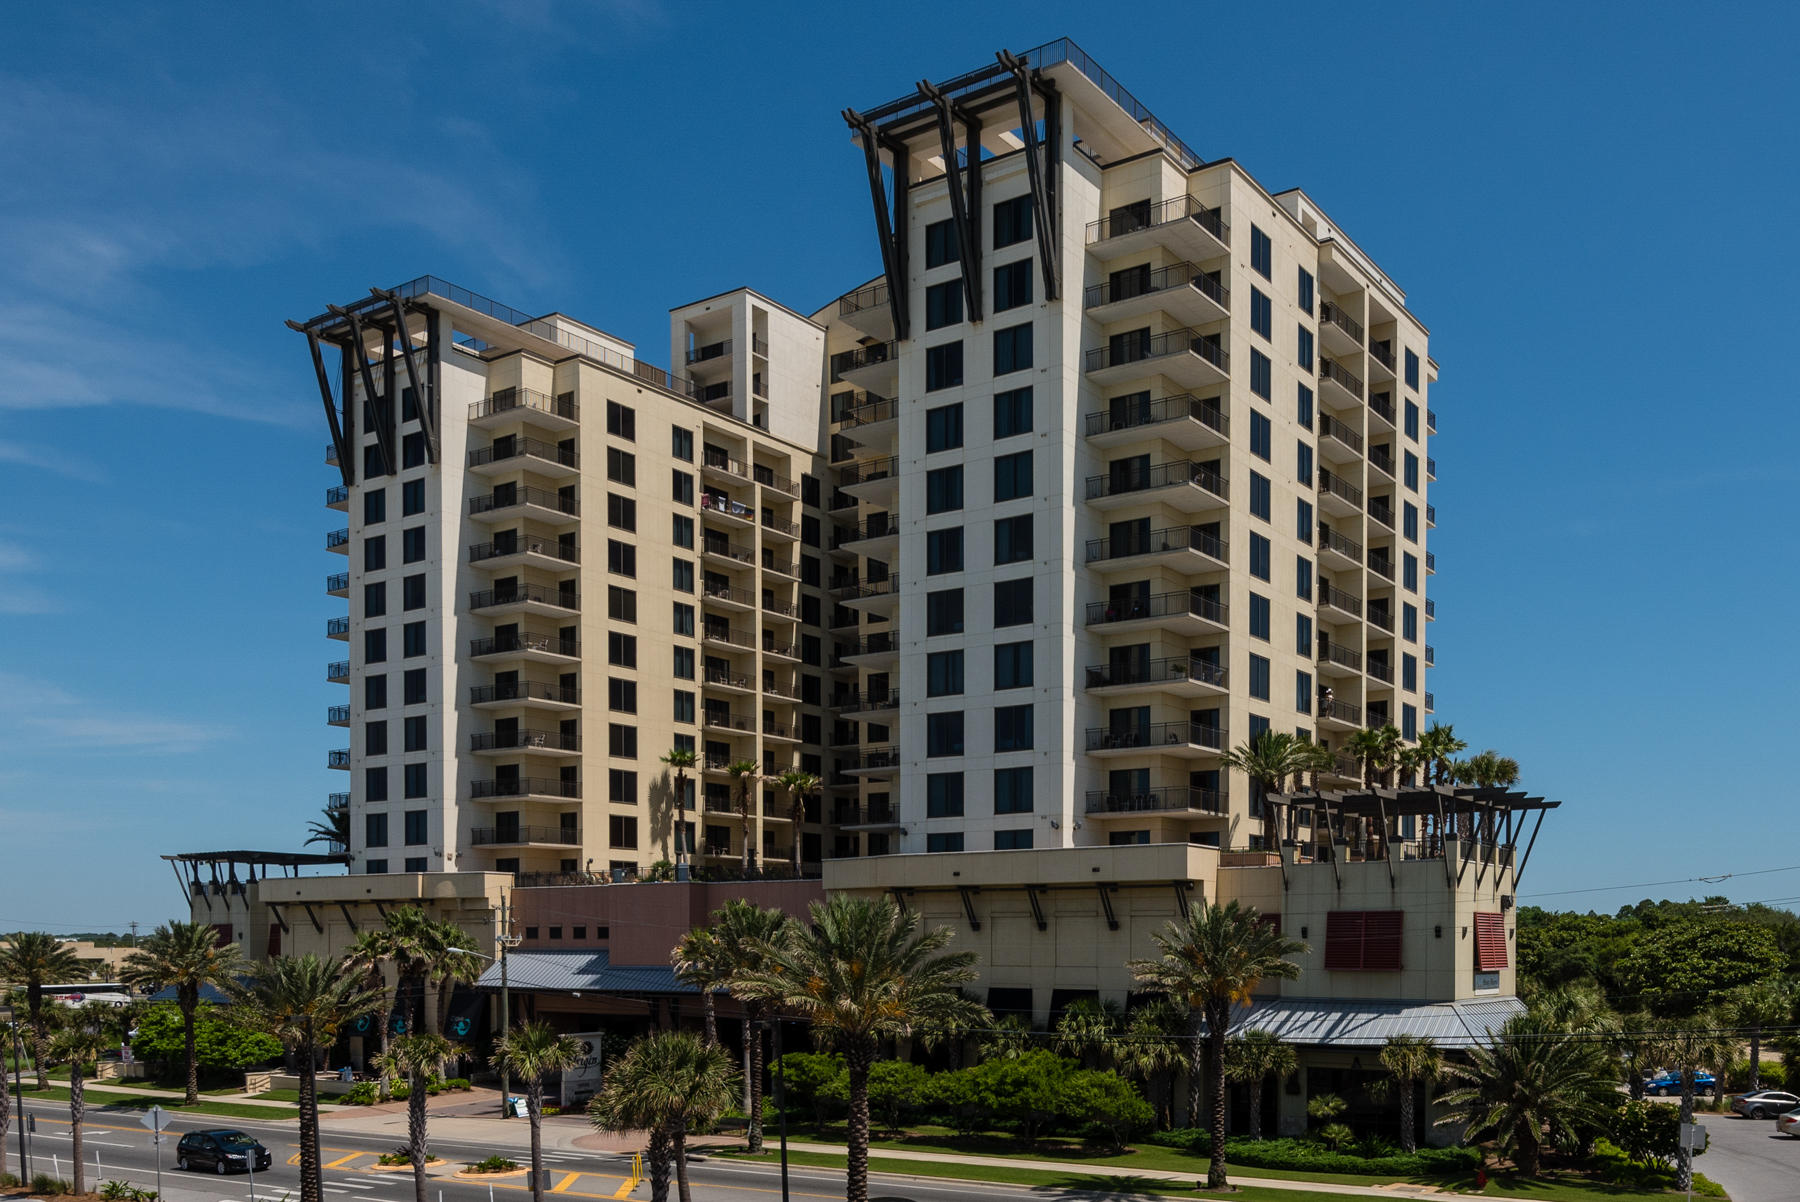 Fabulous efficiency condo across from the beautiful white beaches of Panama City Beach. Perfect for your beach getaway. Located on the 11th Floor with easy access via one of 4 Elevators. New floors and fresh paint. Origin at Seahaven has an In-house Movie Theater, Huge Heated Zero Edge Swimming Pool overlooking the ocean, Pool-side Grilling, Fitness Room, Jacuzzi, Arcade and laundry room. Only minutes from Pier Park - a 900,000 square foot family entertainment complex and a short distance to all PBC has to offer including a great Golf Course, Mini Golf, Jet Ski Rentals, Fishing, Boating, and Sailing. Buyer to verify all room sizes and dimensions.